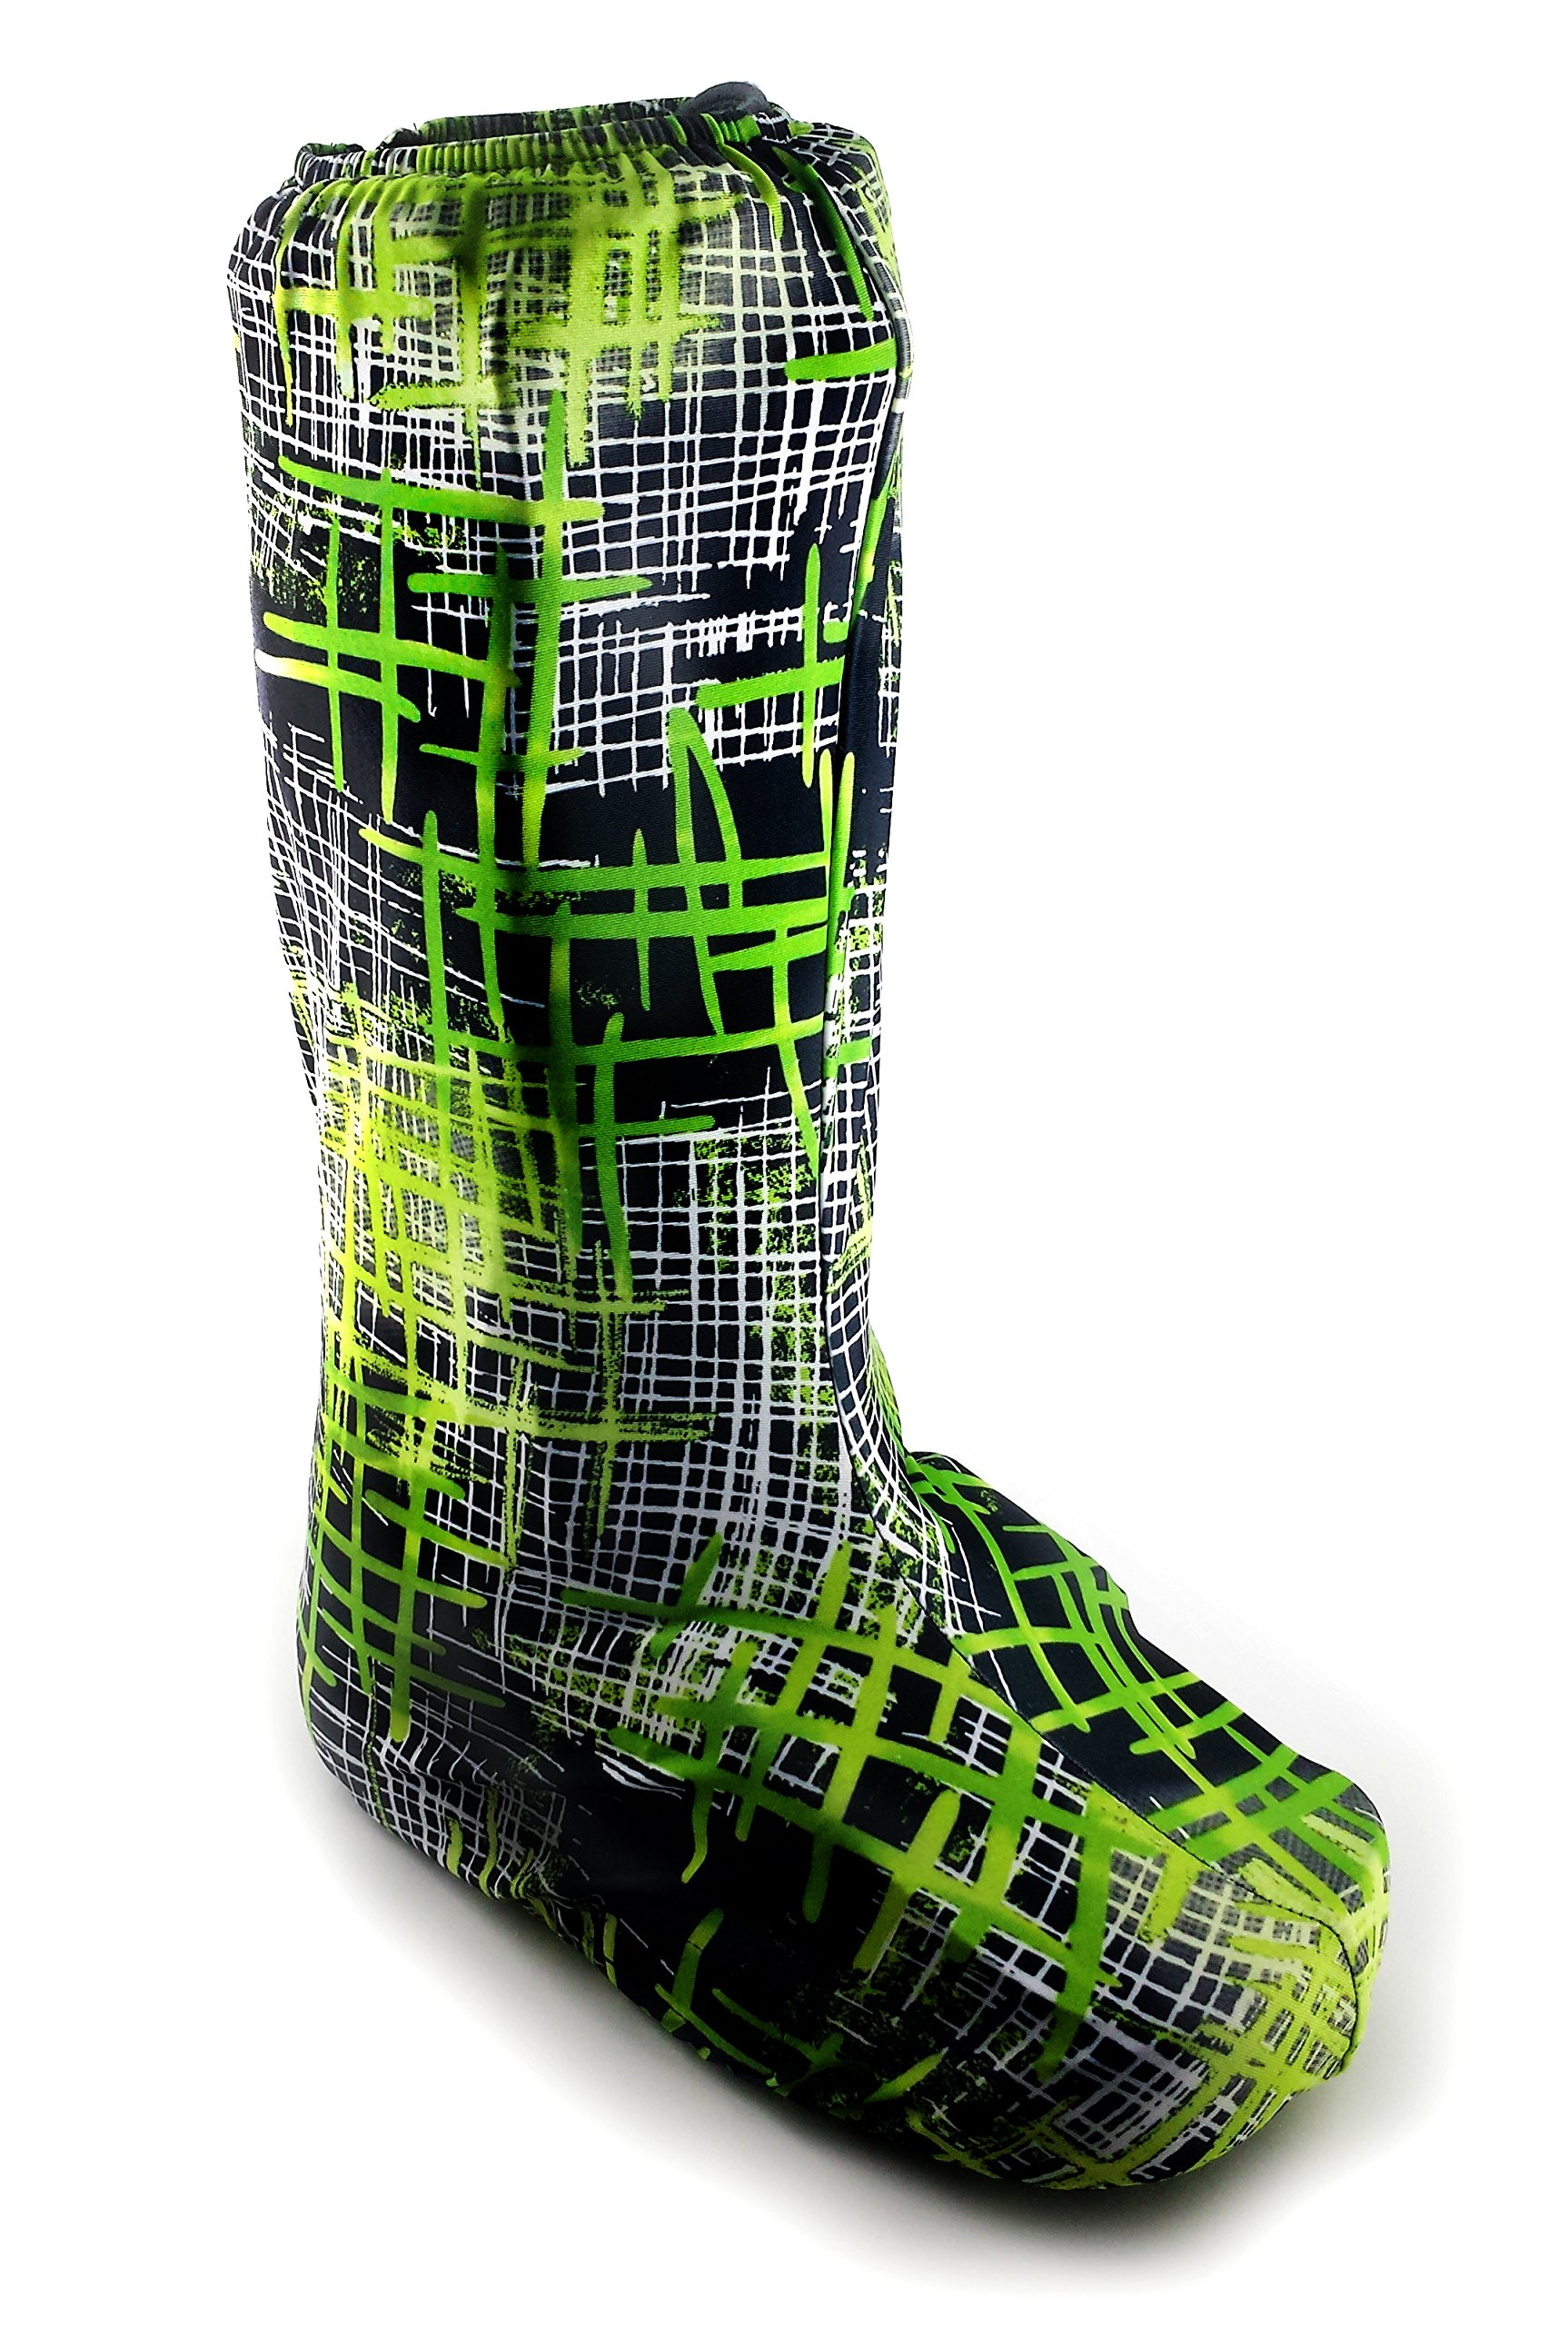 My Recovers Walking Boot Cover for Fracture Boot, Fashion Cover in Green Plaid, Tall Boot, Made in USA, Orthopedic Products Accessories (Medium) by My Recovers